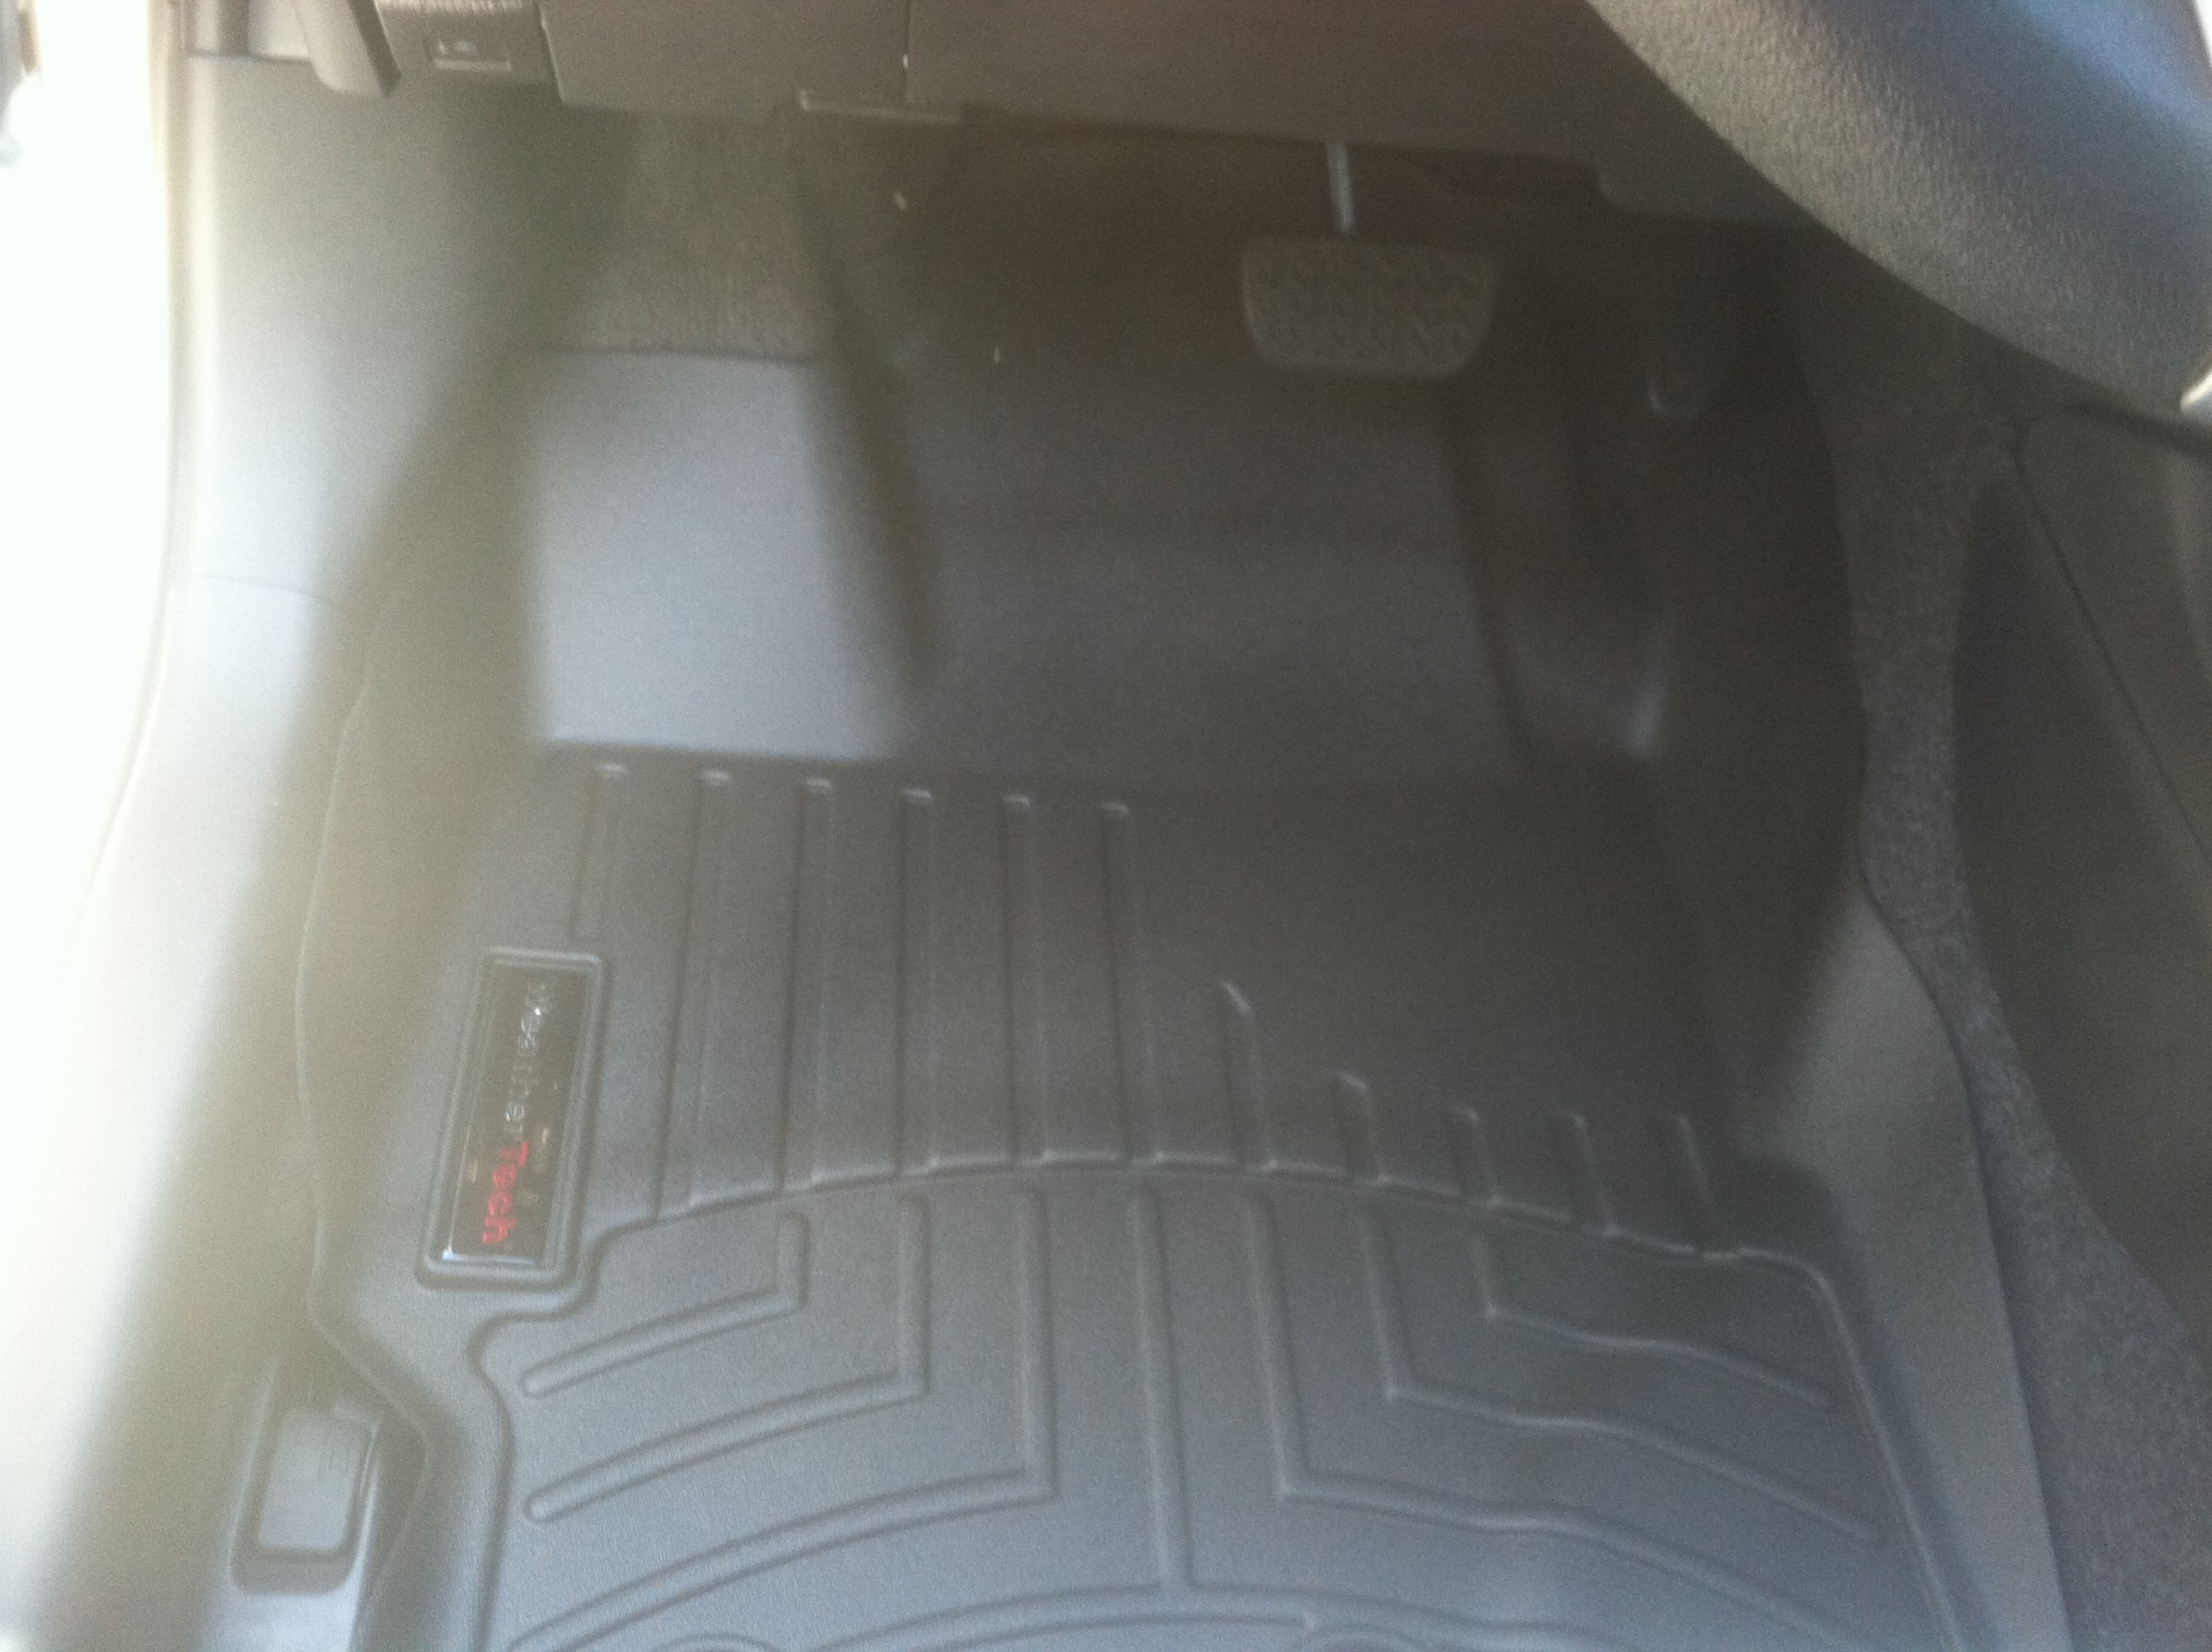 Weathertech floor mats prius - View Attachment 40718 View Attachment 40717 Ordered A Set Of The Weathertech Floor Mats For The C And They Arrived Yesterday